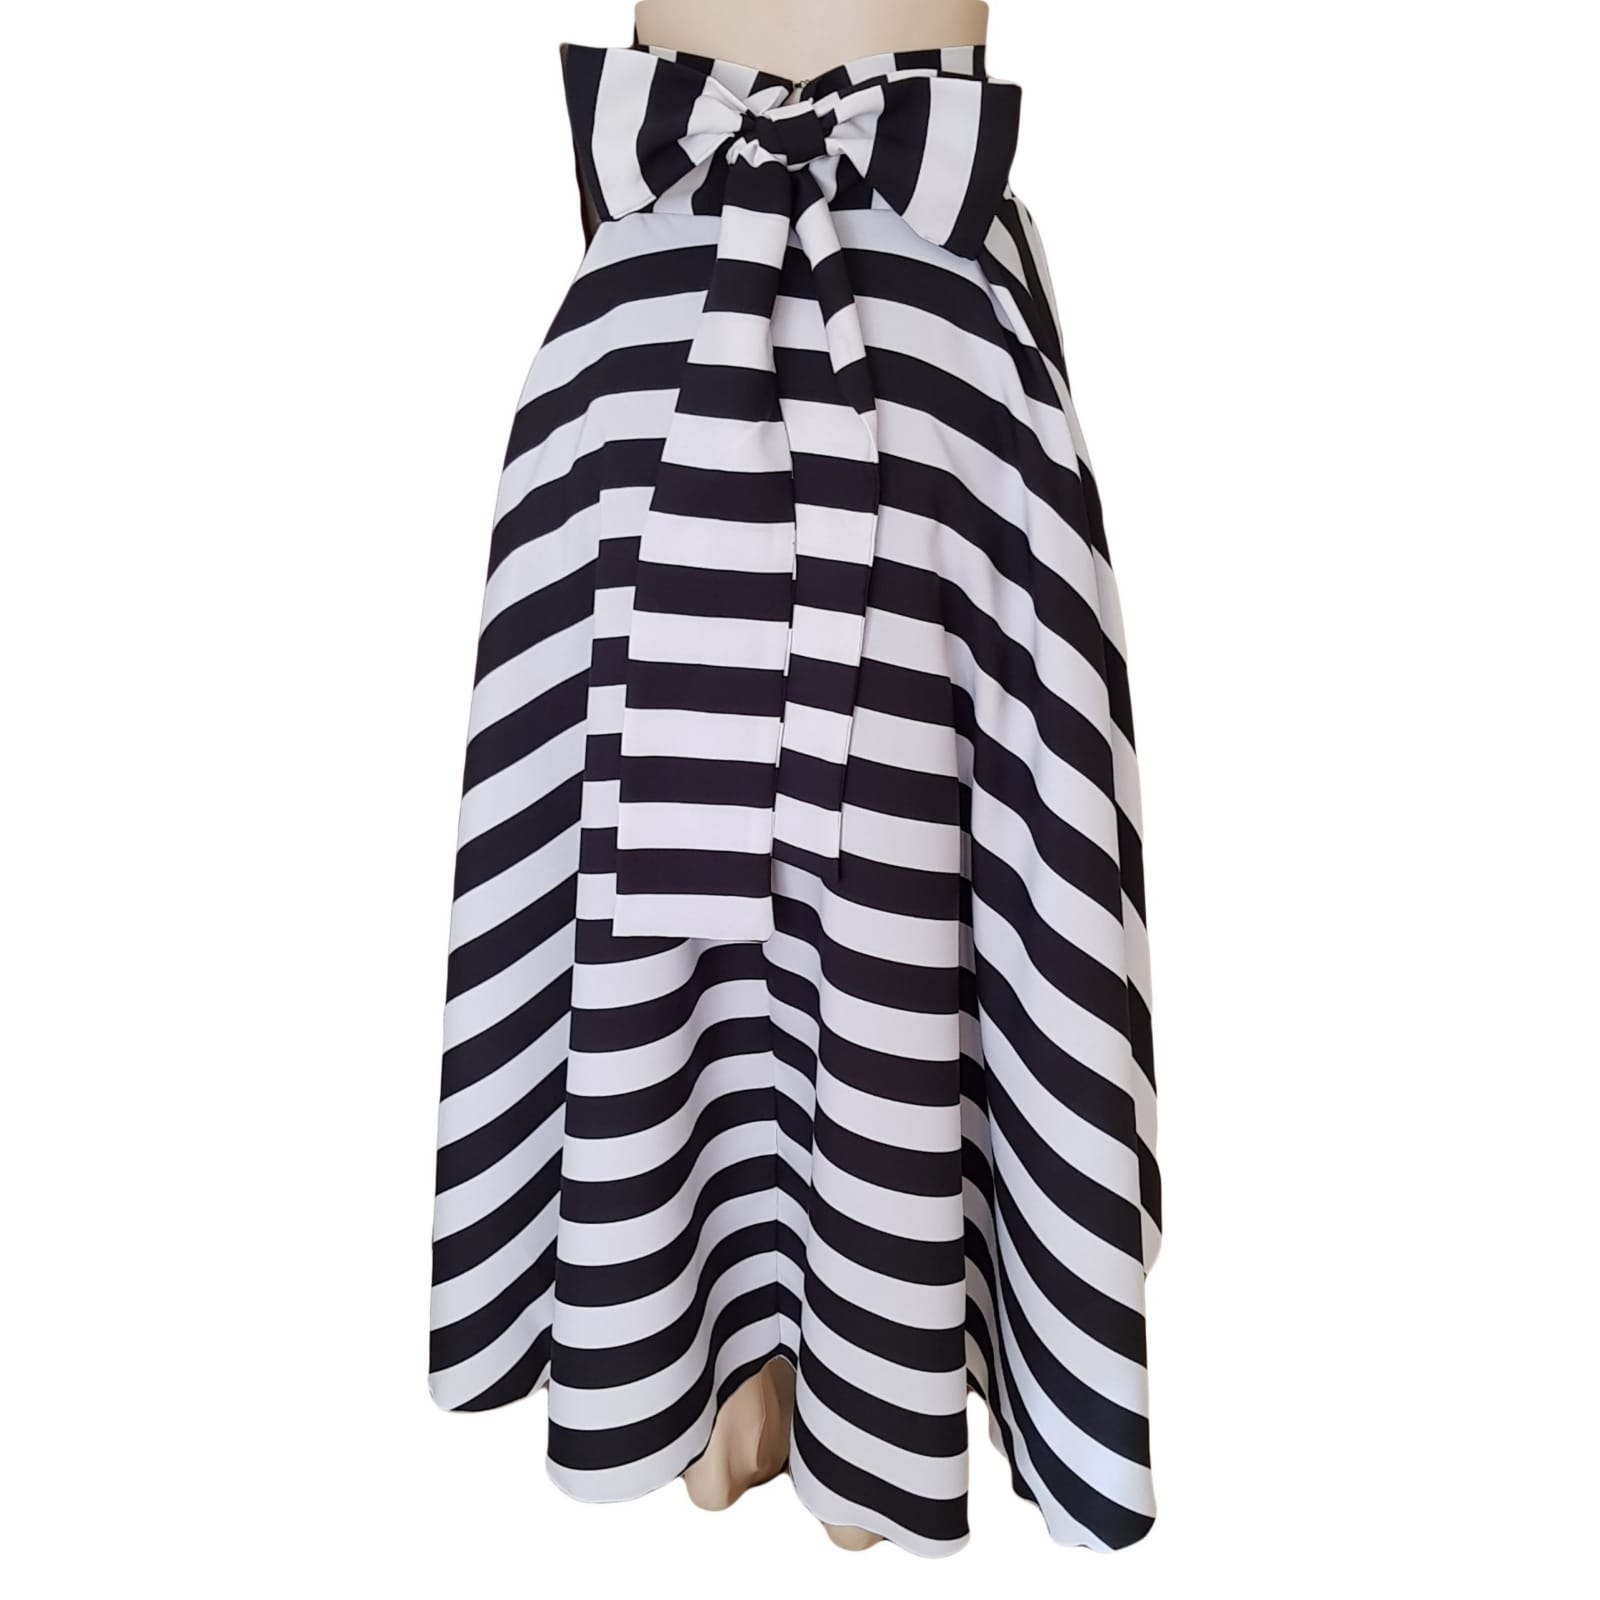 Black and white horizontal striped smart casual skirt 3 black and white horizontal striped high low, high waist smart casual skirt with bow detail on the back.